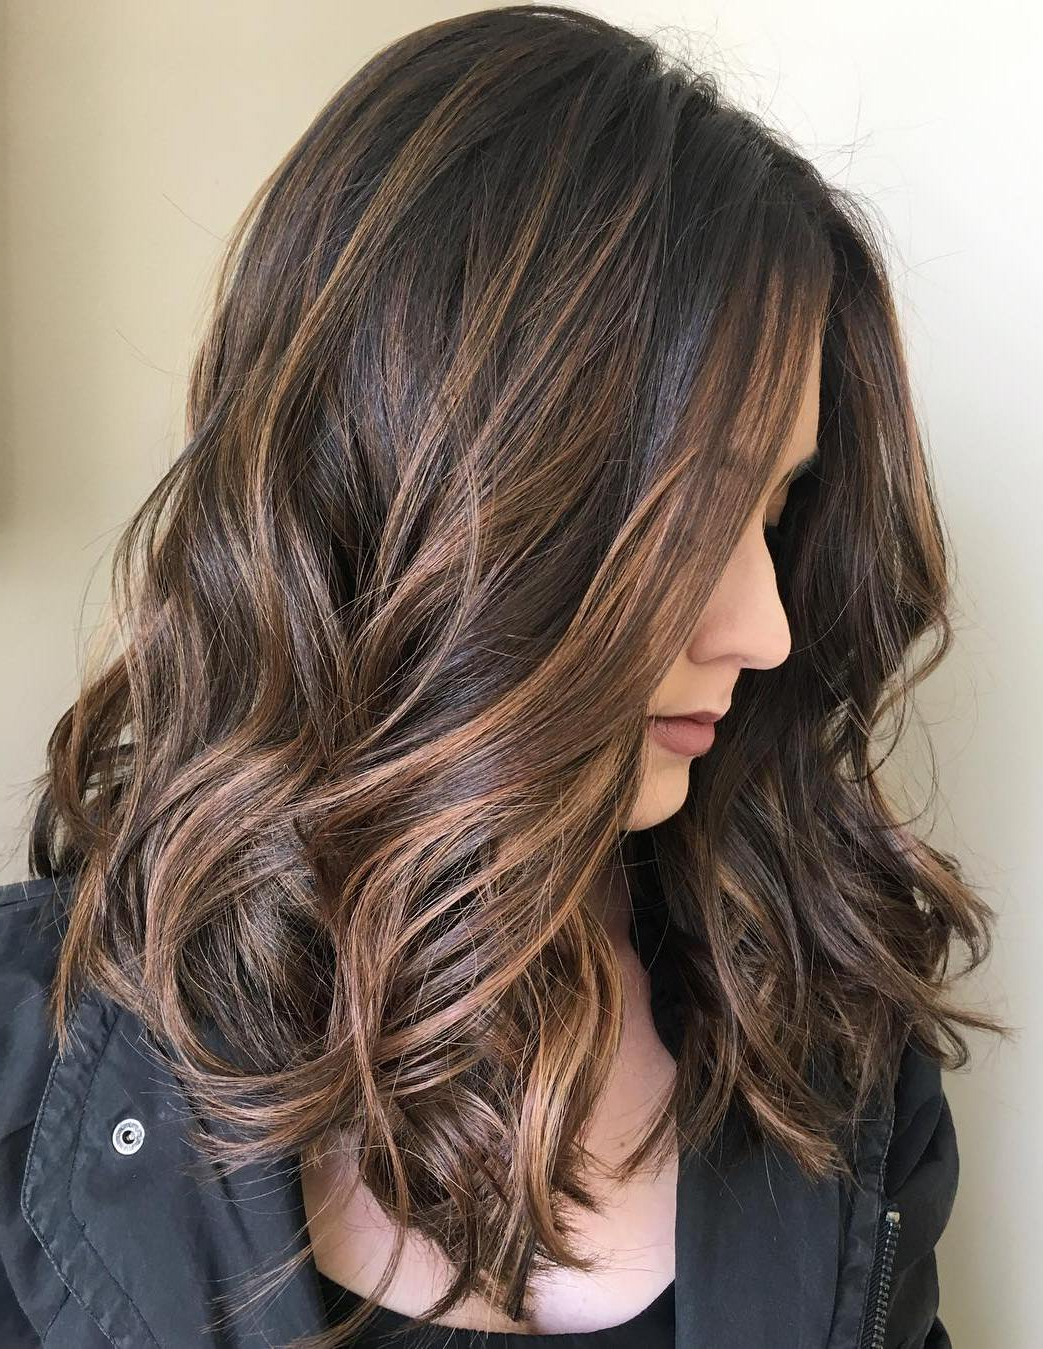 70 Balayage Hair Color Ideas With Blonde, Brown And Caramel Highlights Within Well Liked Long Choppy Haircuts With A Sprinkling Of Layers (Gallery 20 of 20)